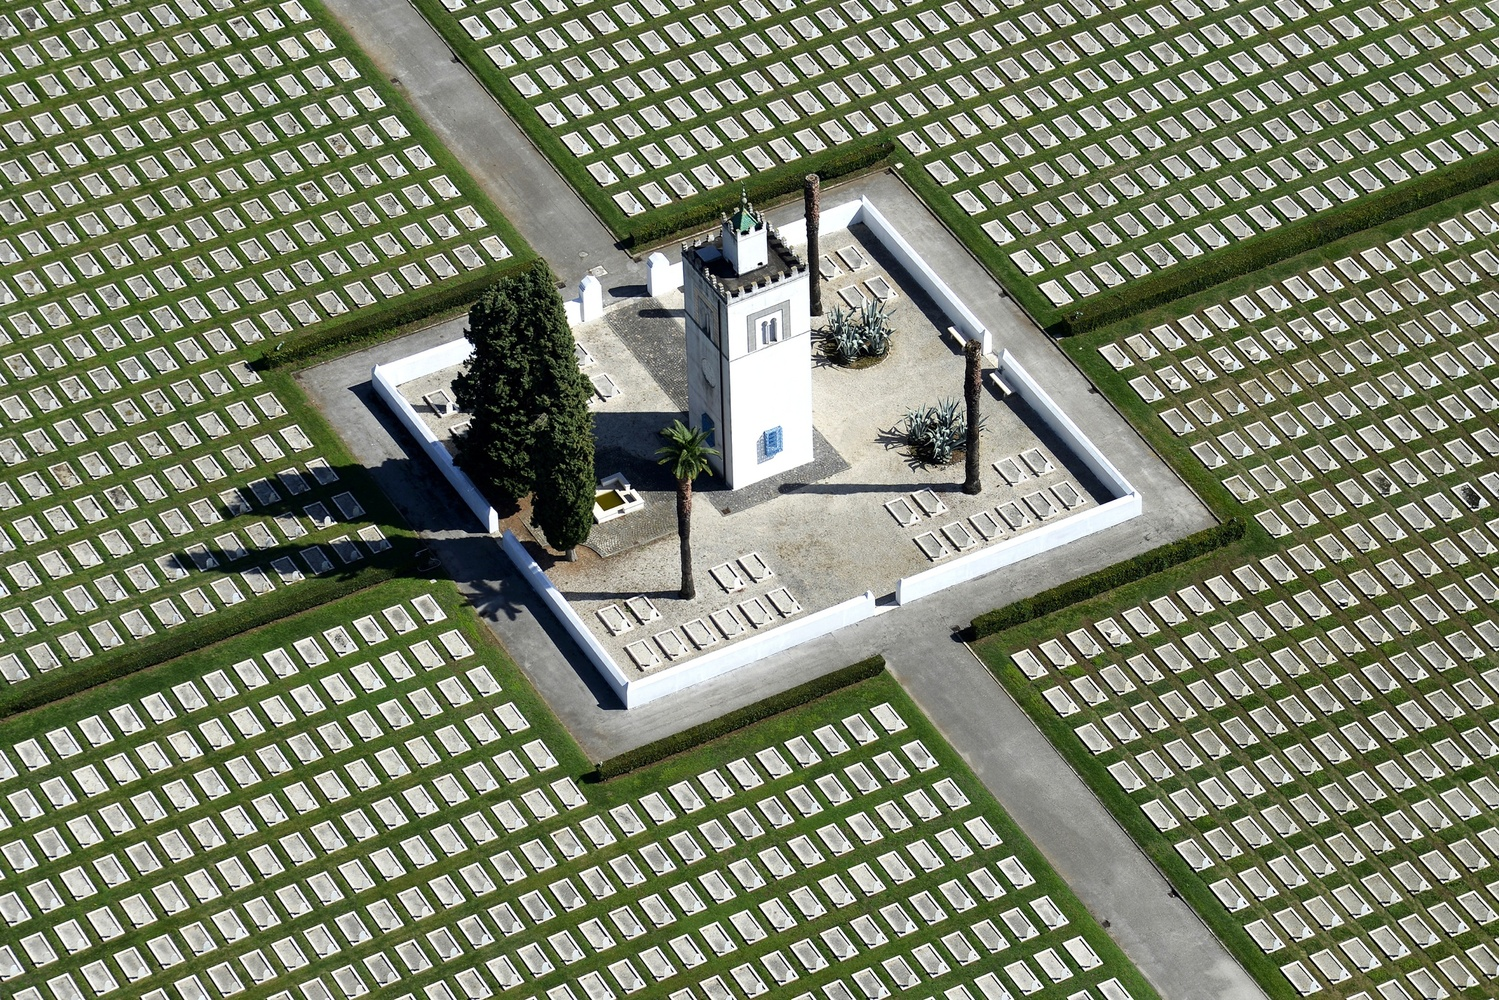 French War Cemetery by Franco Cappellari